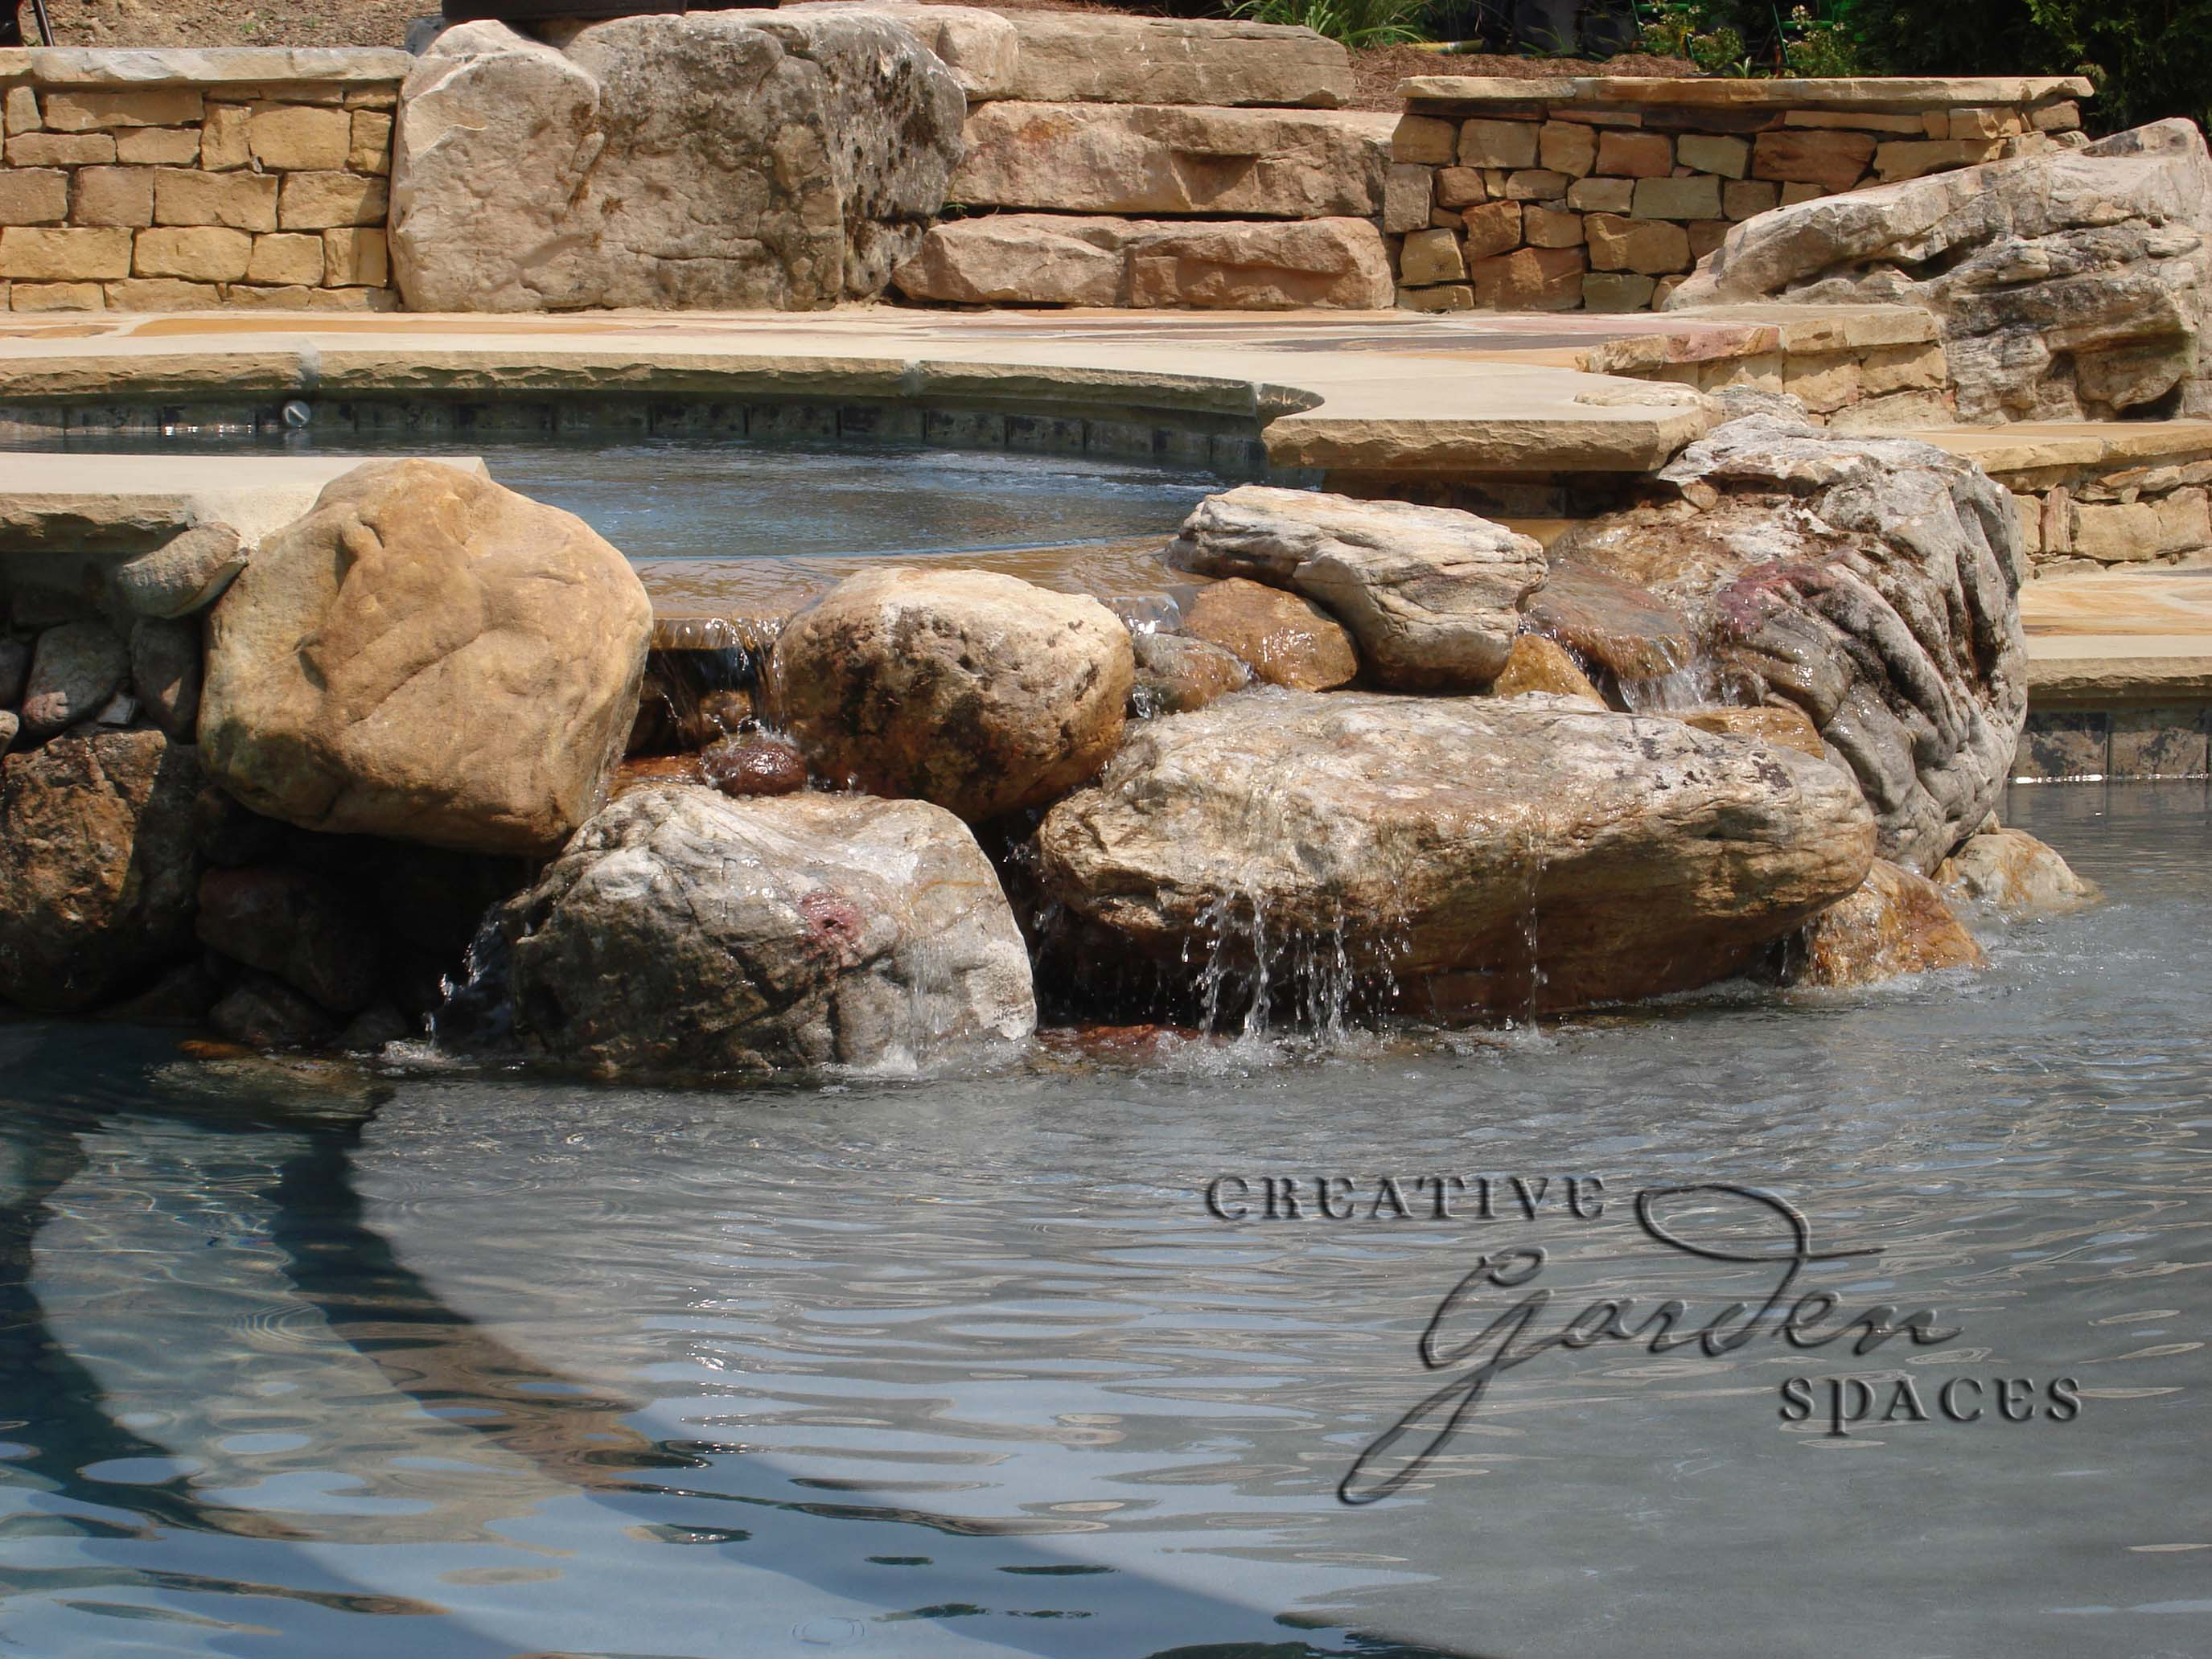 Creative Garden Spaces Inc, D.H. Griffin, Greensboro NC, pool waterfall, natural waterfall, water feature, pool fountain, landscape boulders, custom stonework